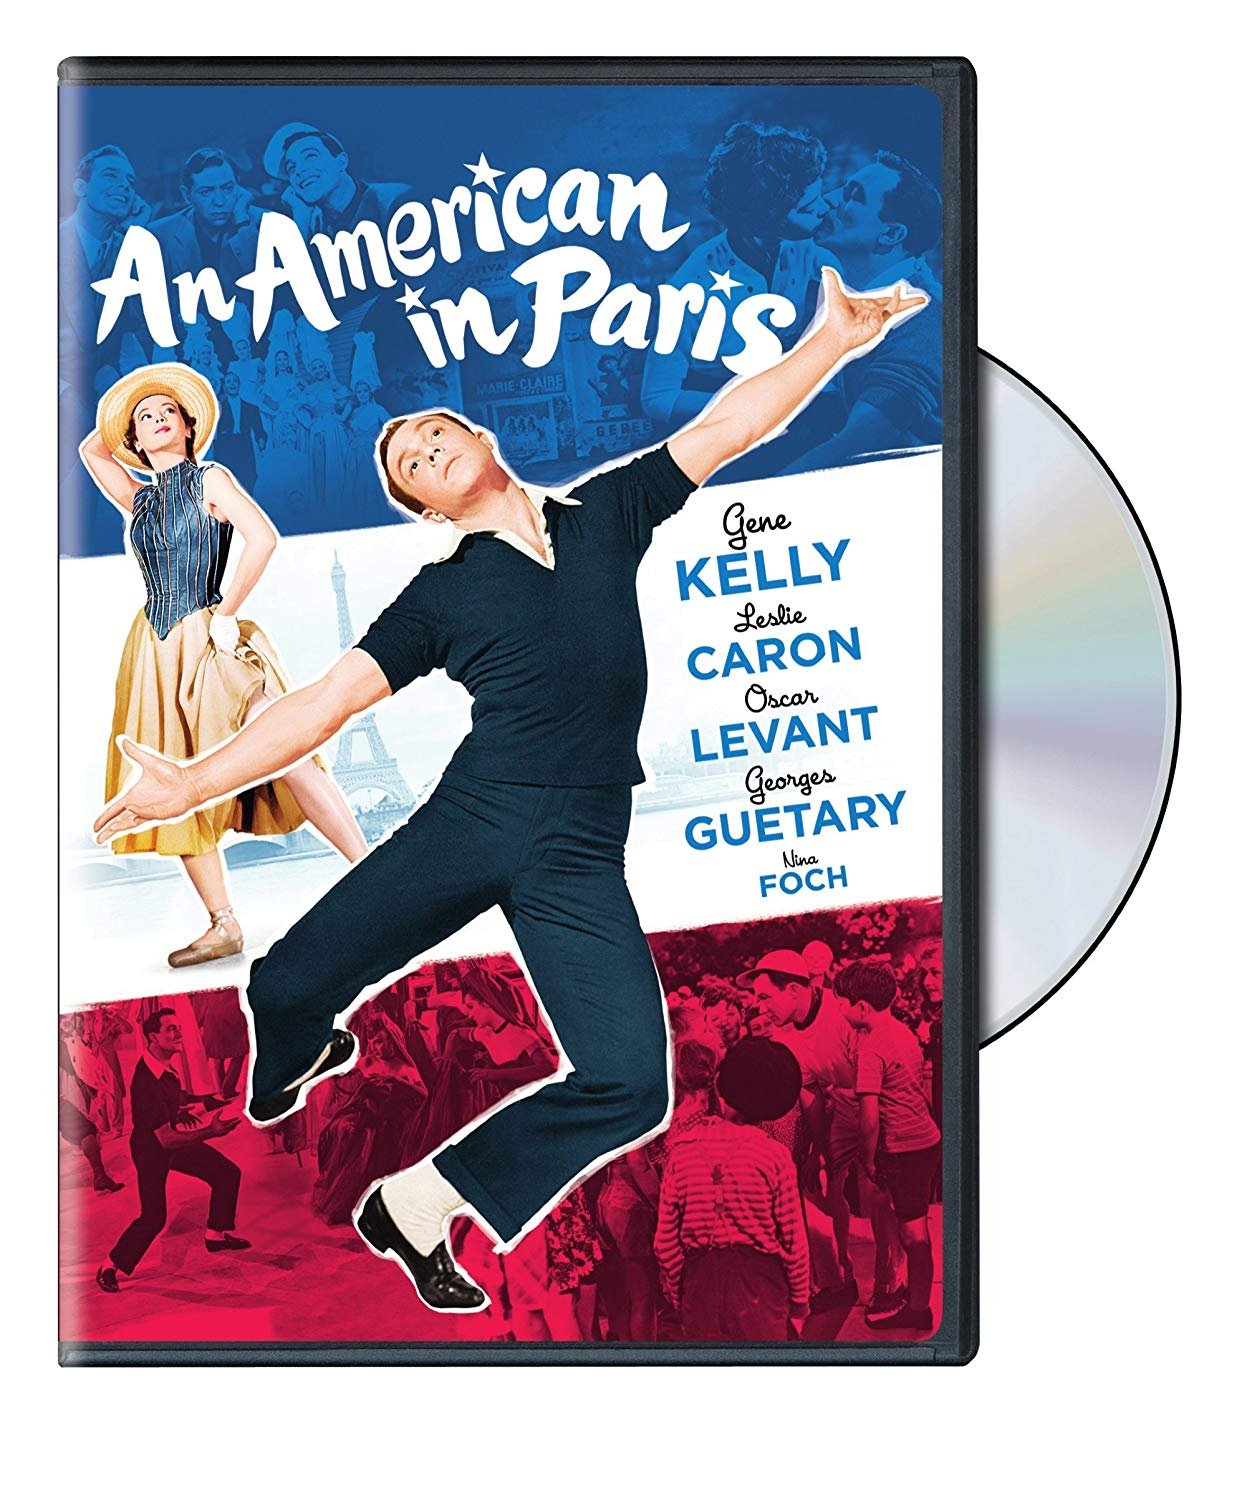 Funny movie quotes from An American in Paris starring Gene Kelly, Leslie Carron, Oscar Levant - a romantic triangle with lots of dancing - and lots of humor! Read on ...